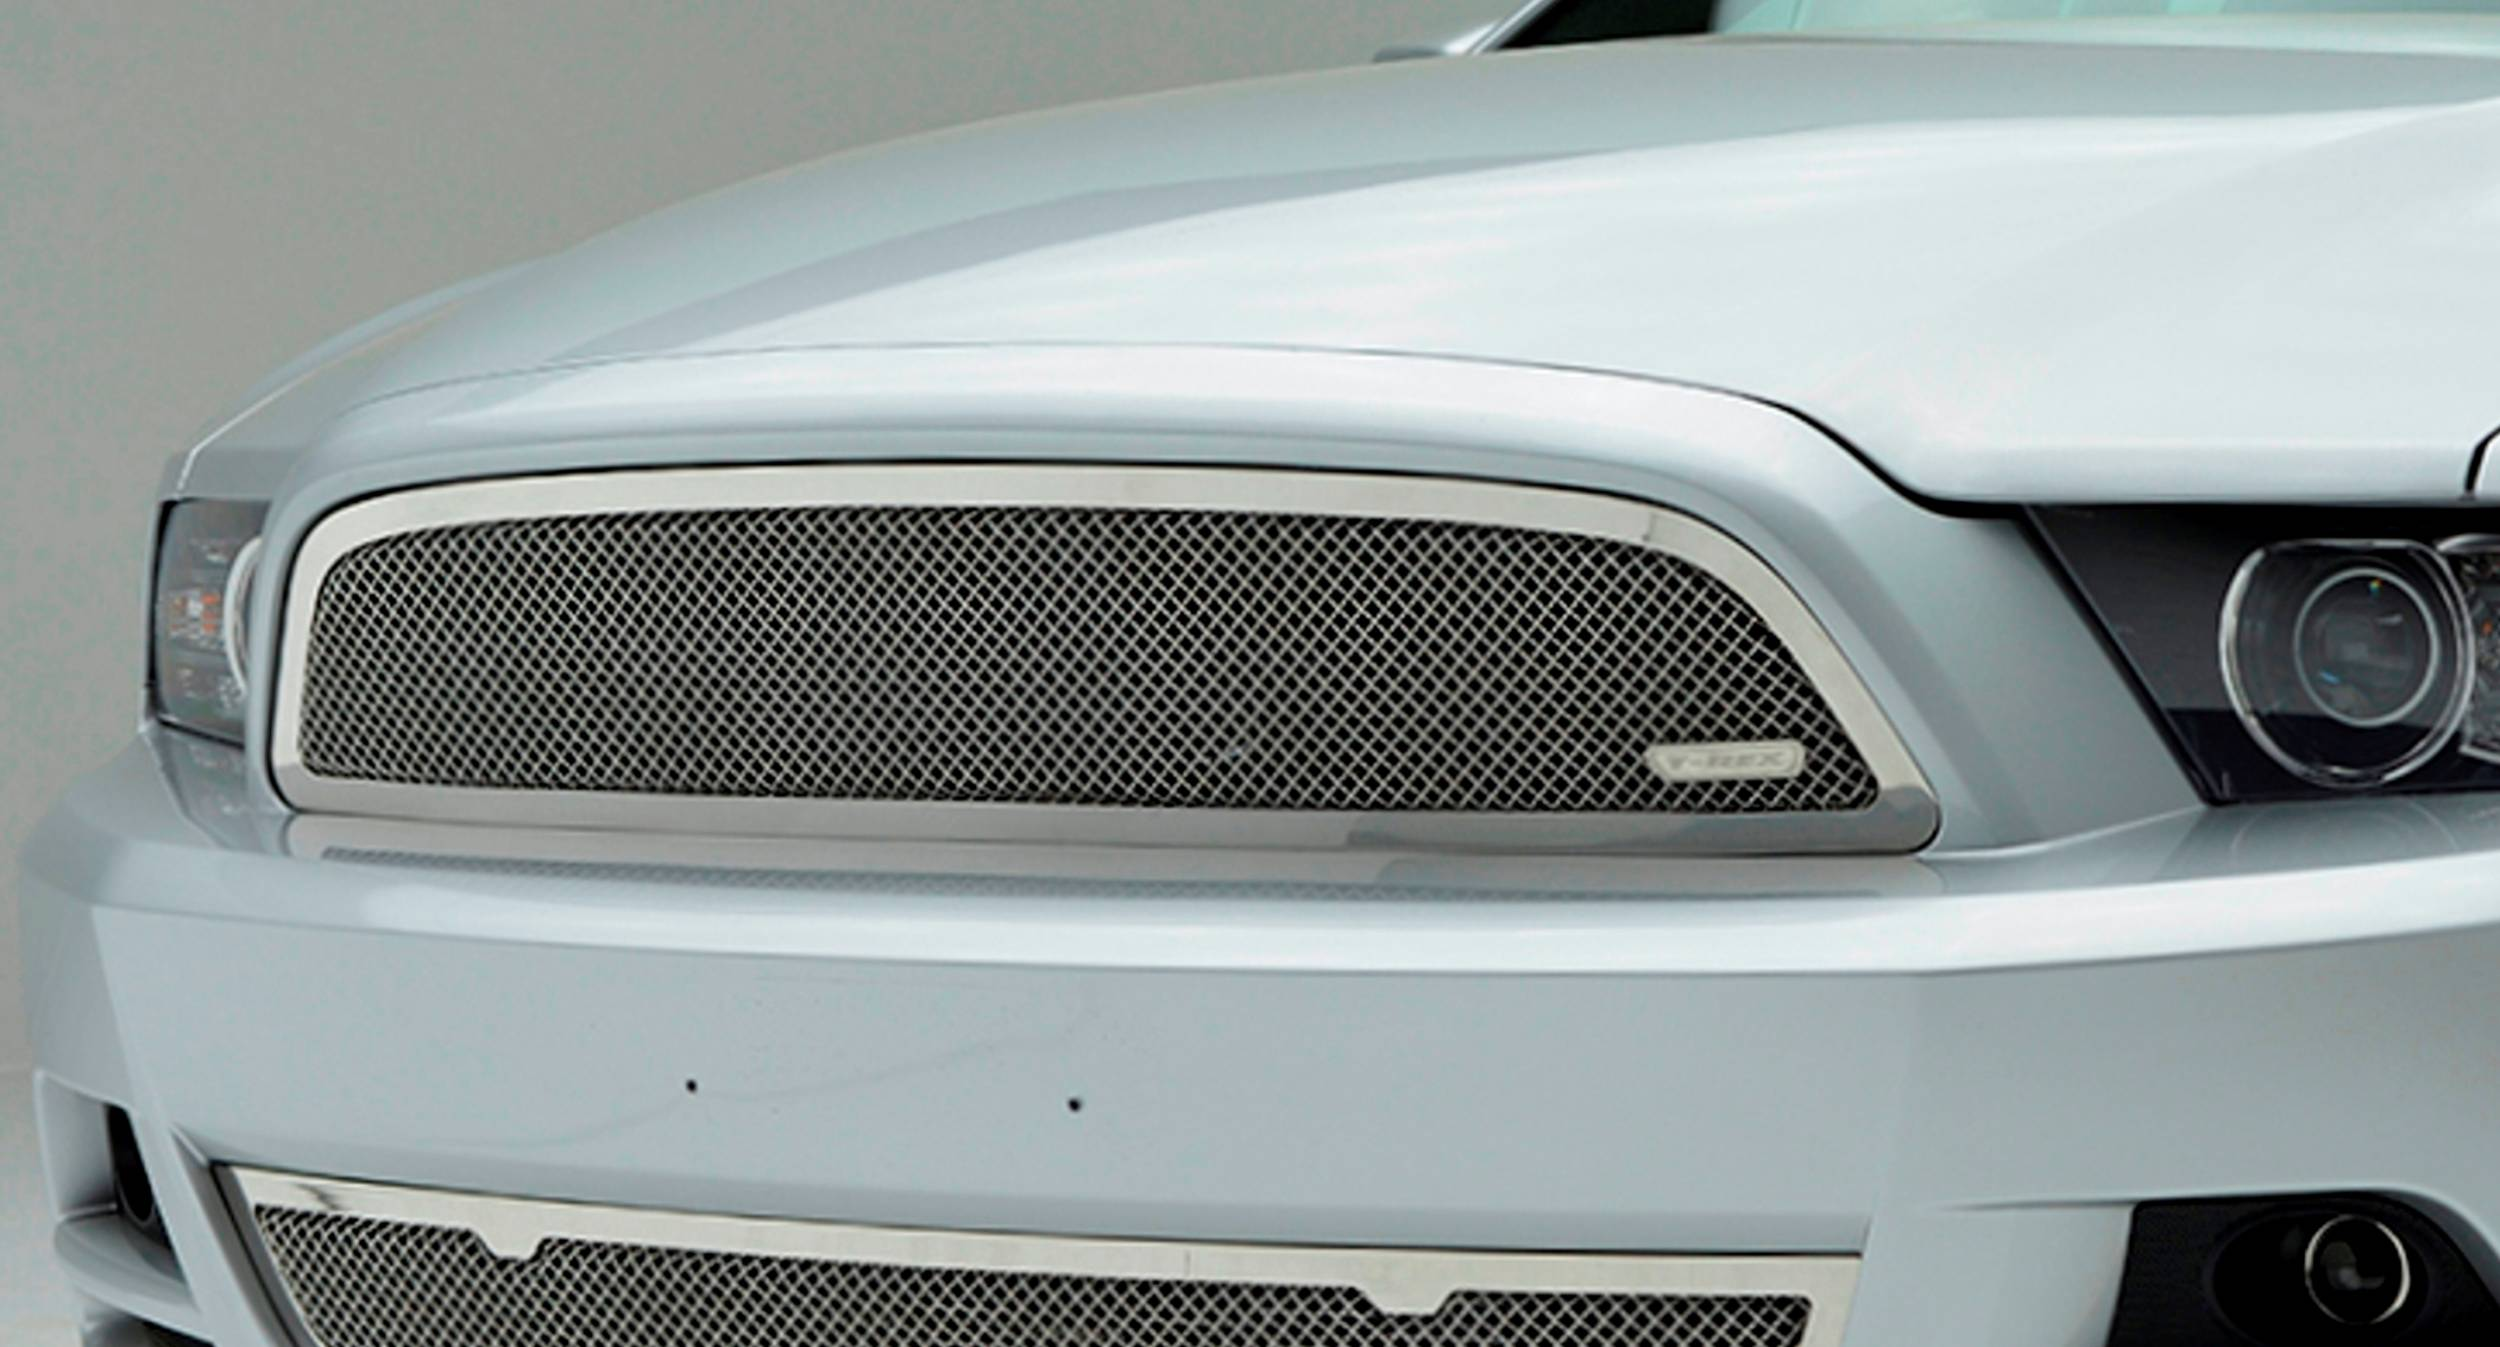 T-REX Grilles - Ford Mustang V6 Coupe, Upper Class, Formed Mesh Grille, Main, No Logo cutout, Overlay, 1 Pc, Polished Stainless Steel